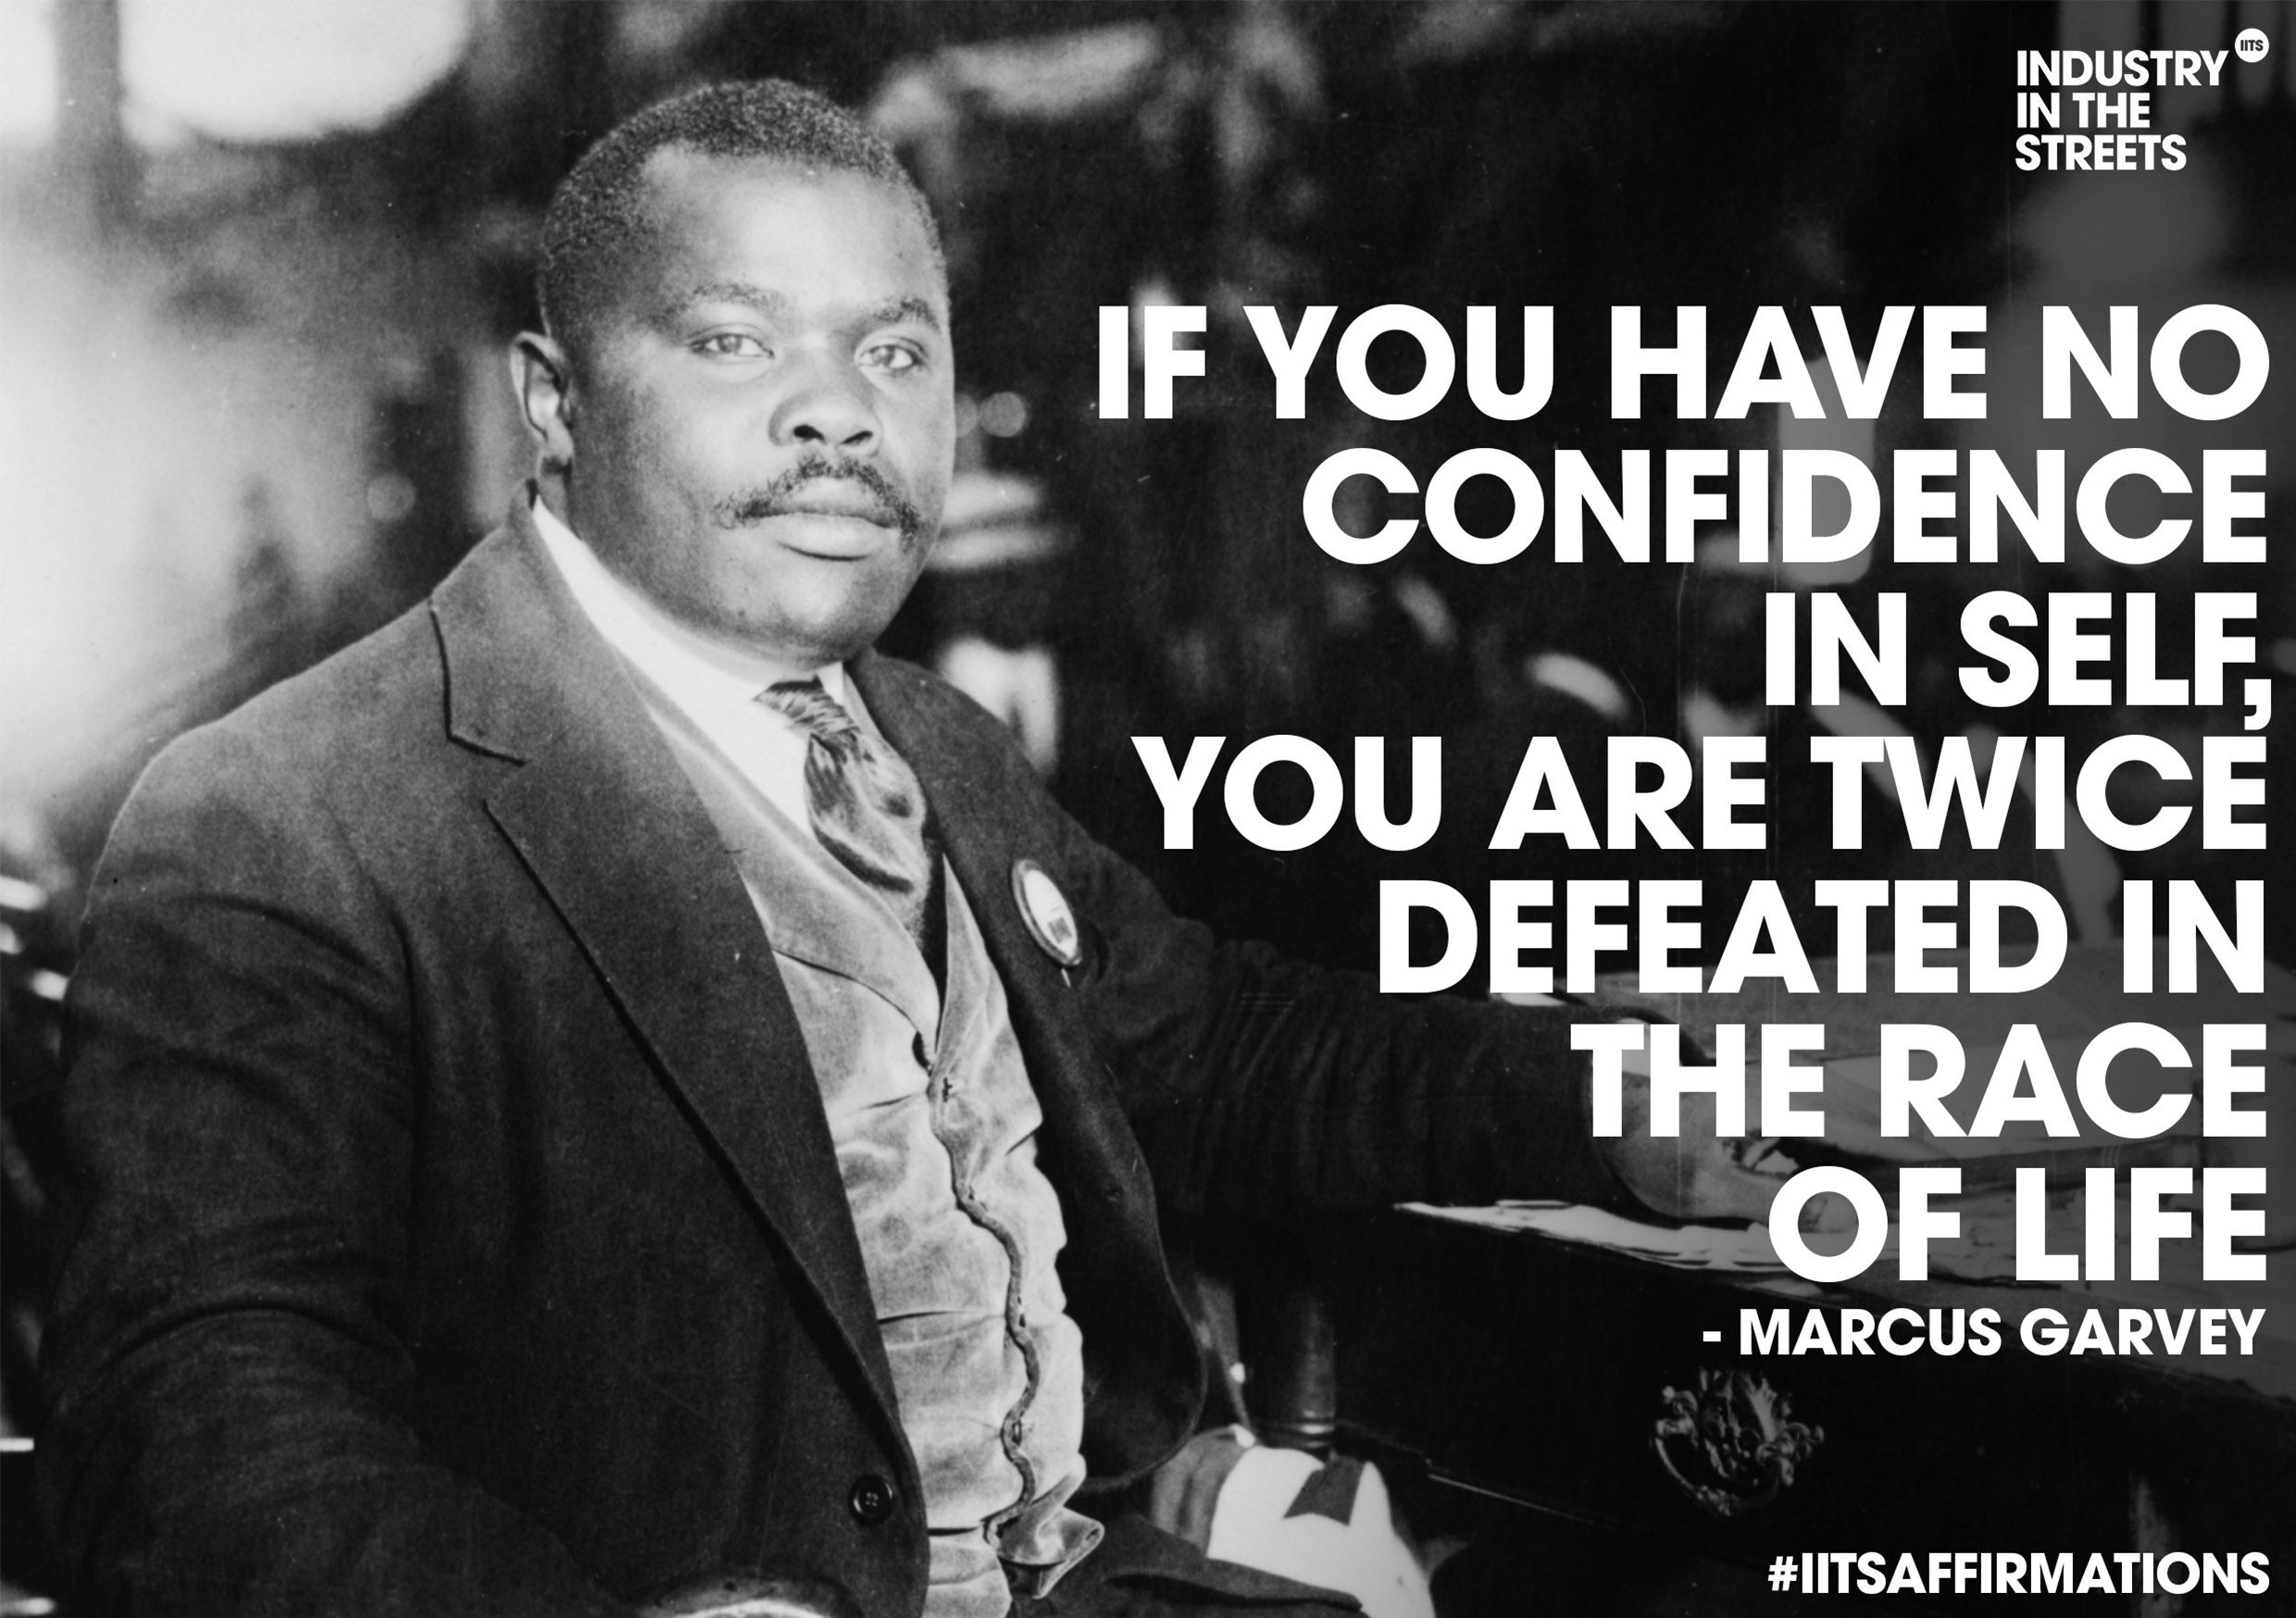 Marcus Garvey Quotes On Education thumbnail